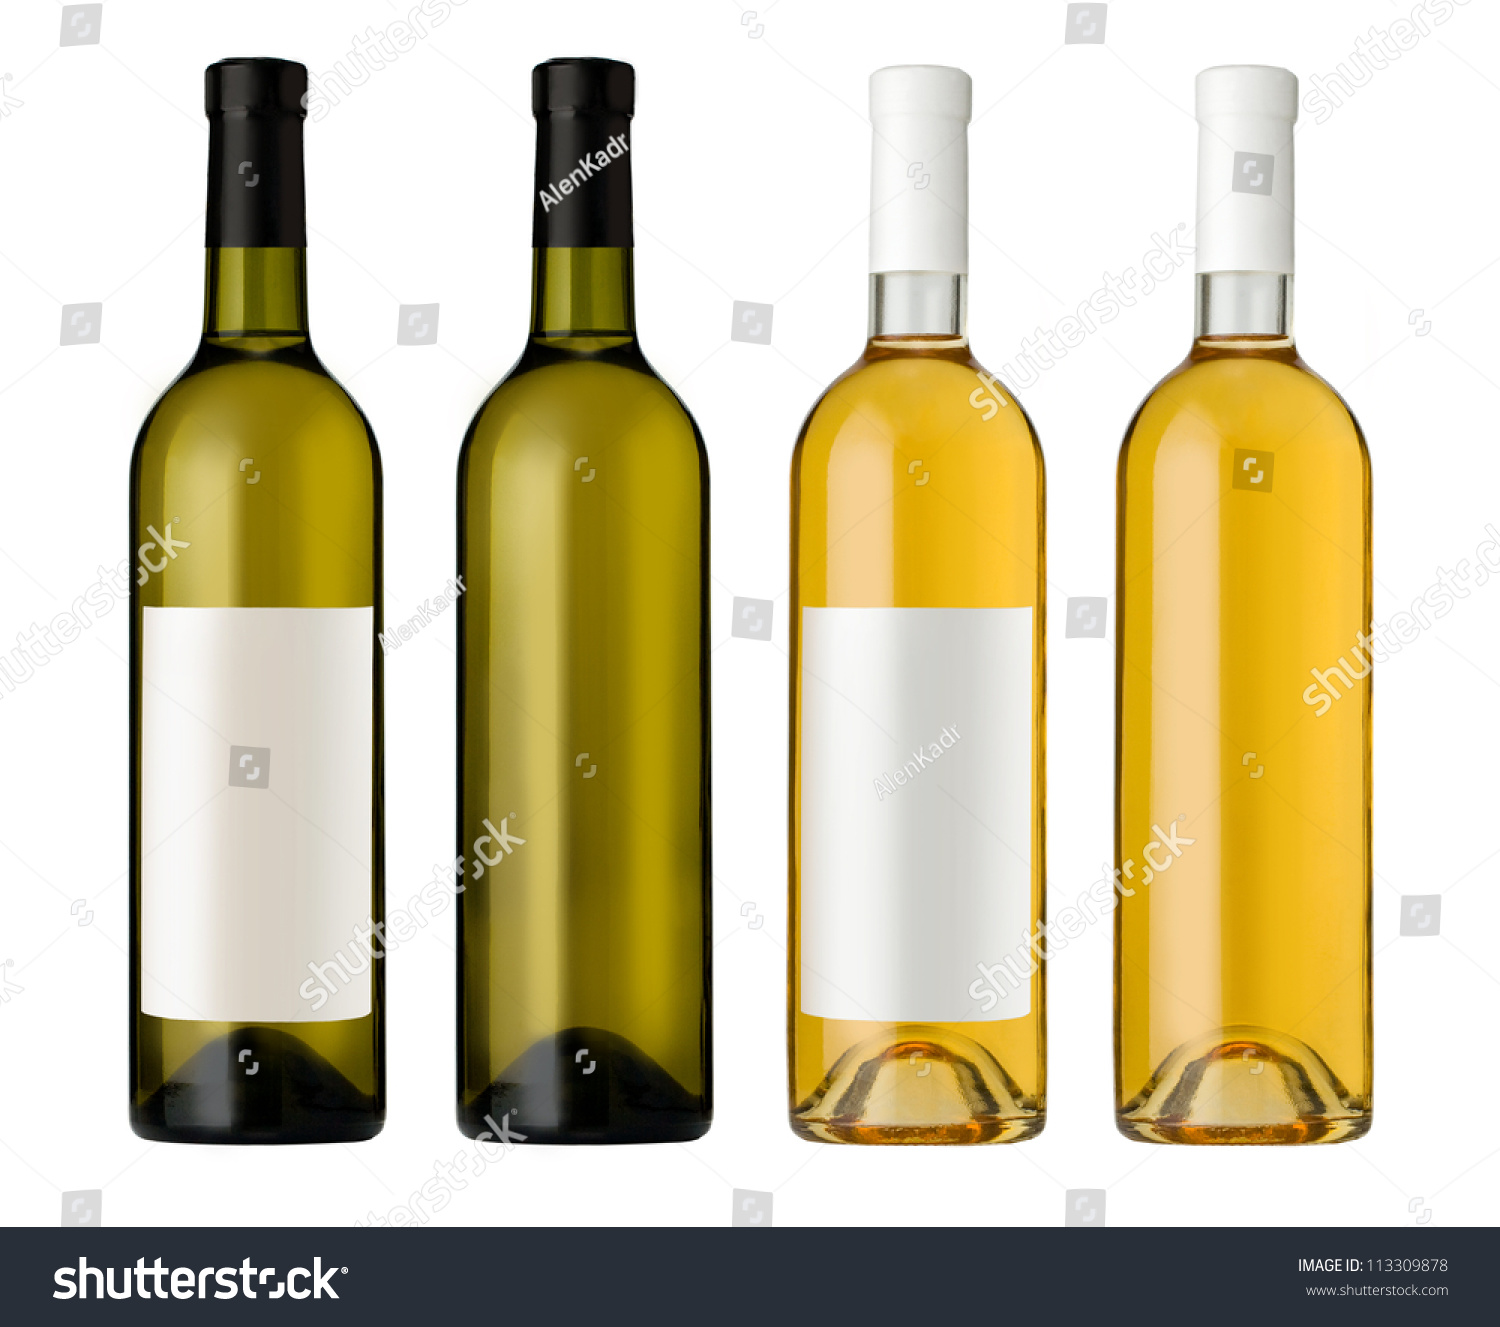 White Wine Bottle Clear Glass Bottle Stock Photo 113309878 ...